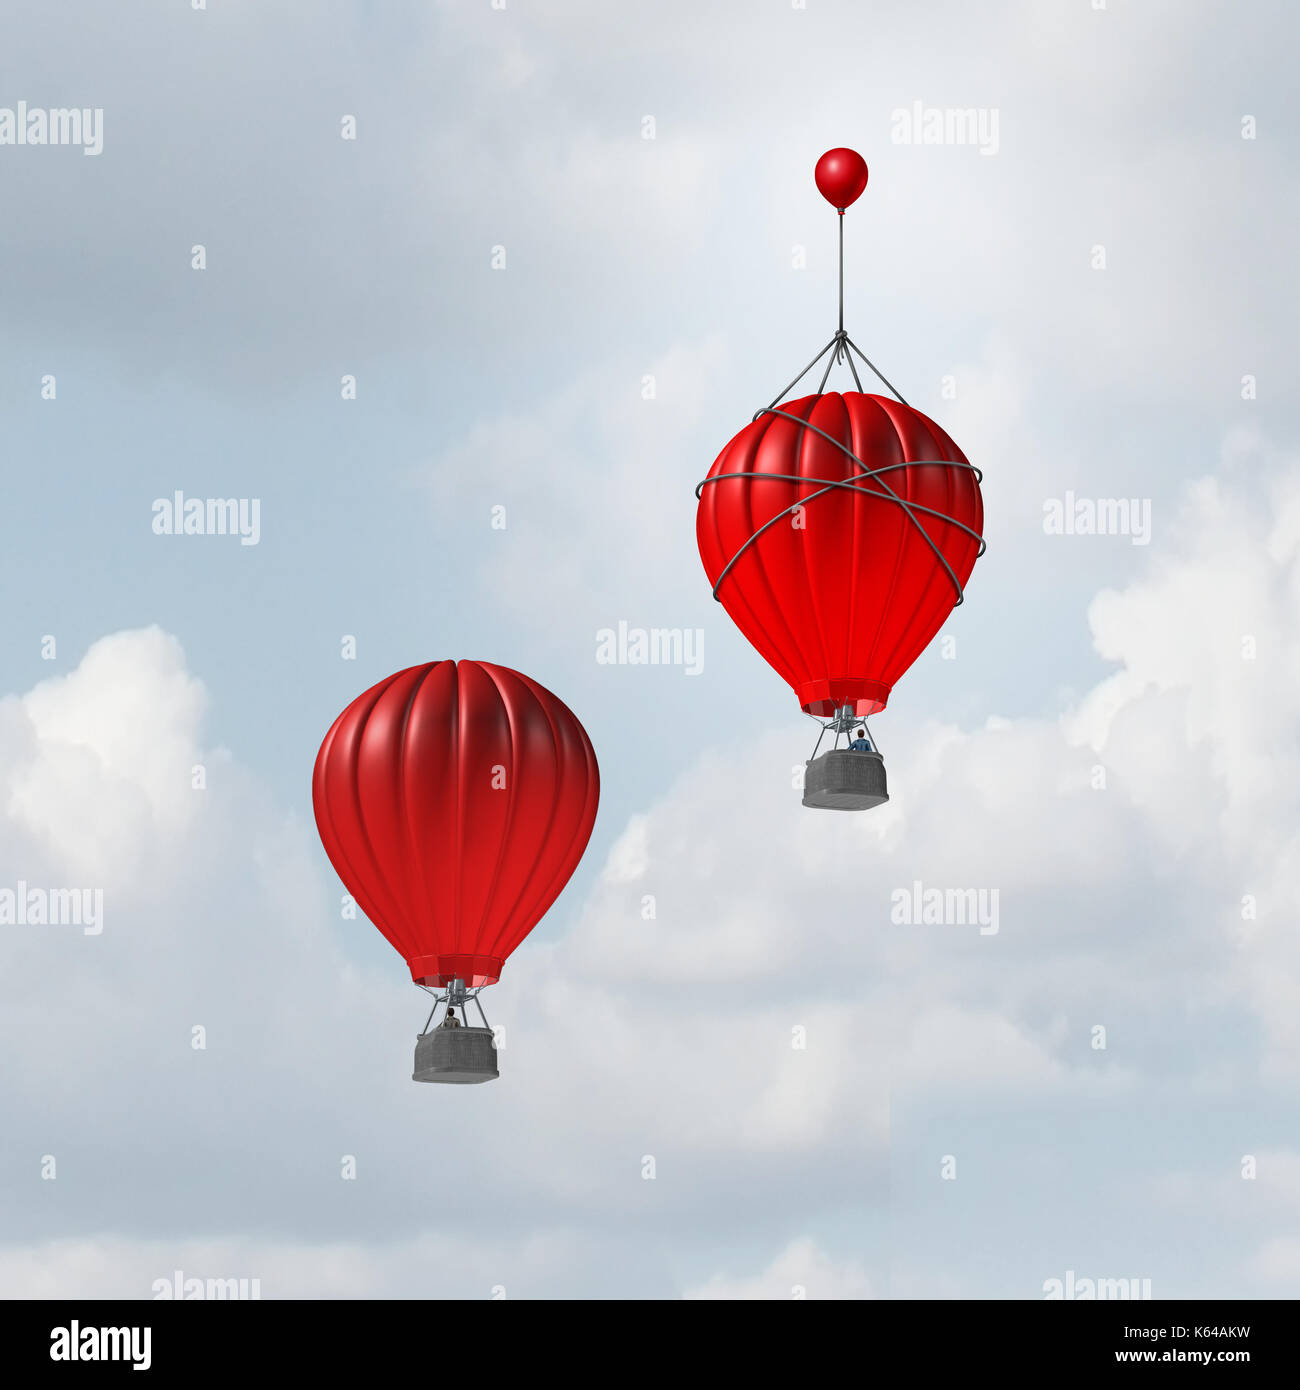 Concept of advantage and competitive edge as two hot air balloons racing to the top but a leader with a small balloon attached giving the winning. - Stock Image